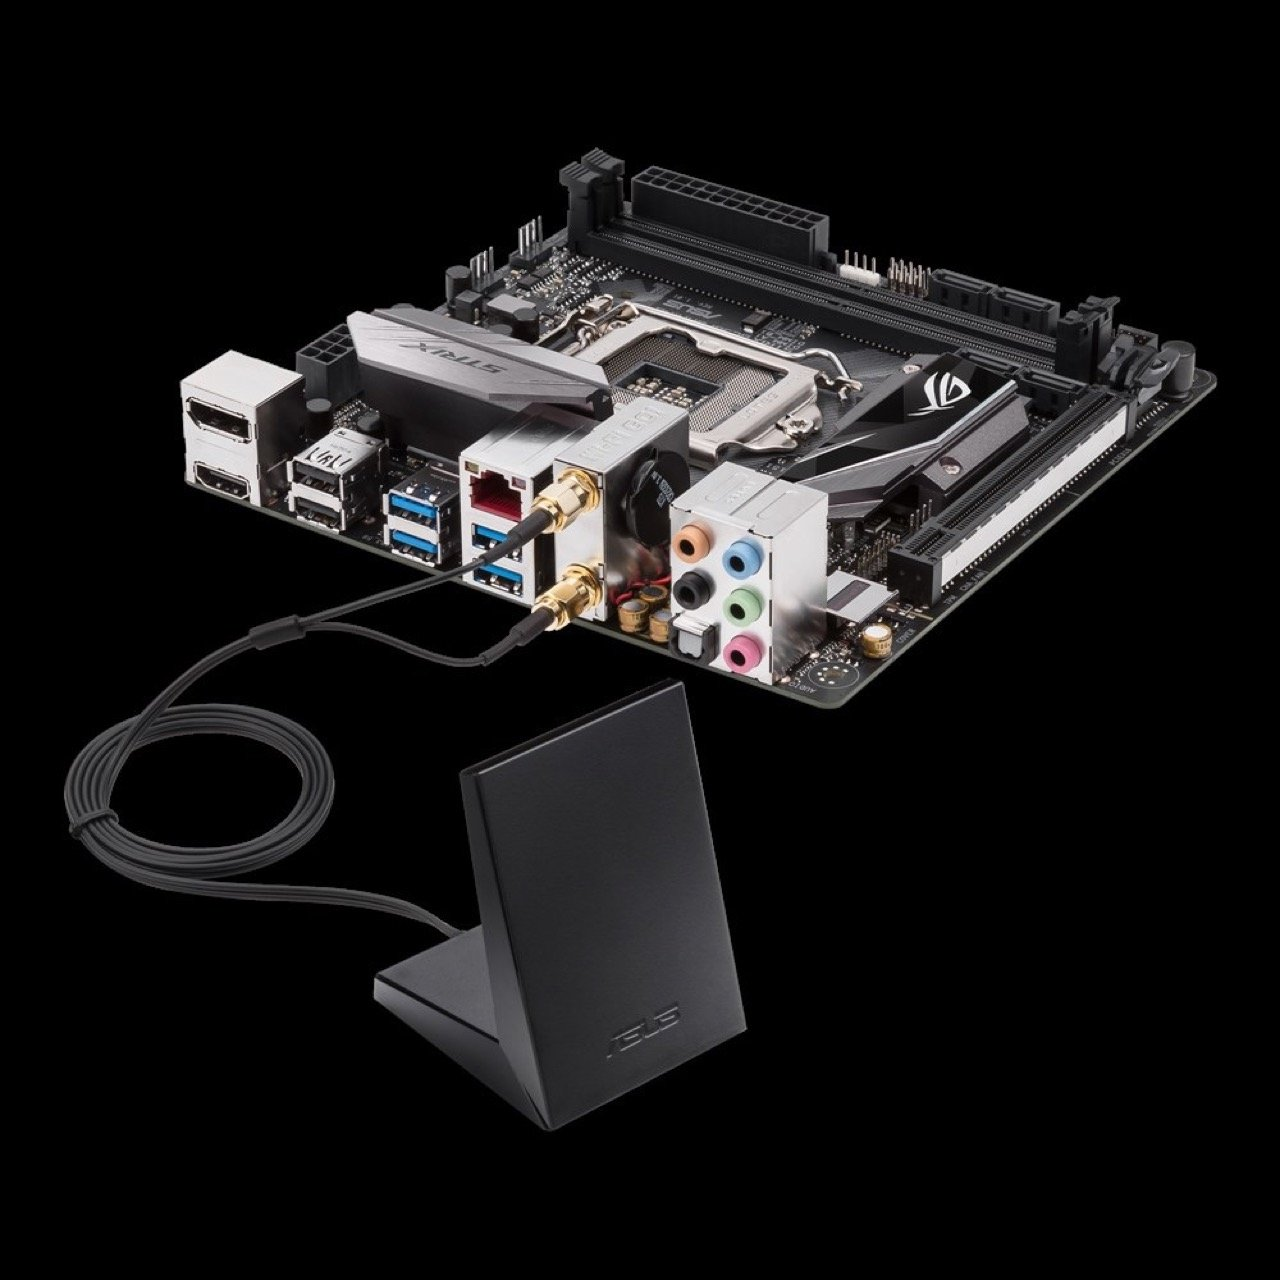 Image 5 : Asus B250I : carte Mini-ITX pour gamers frugaux